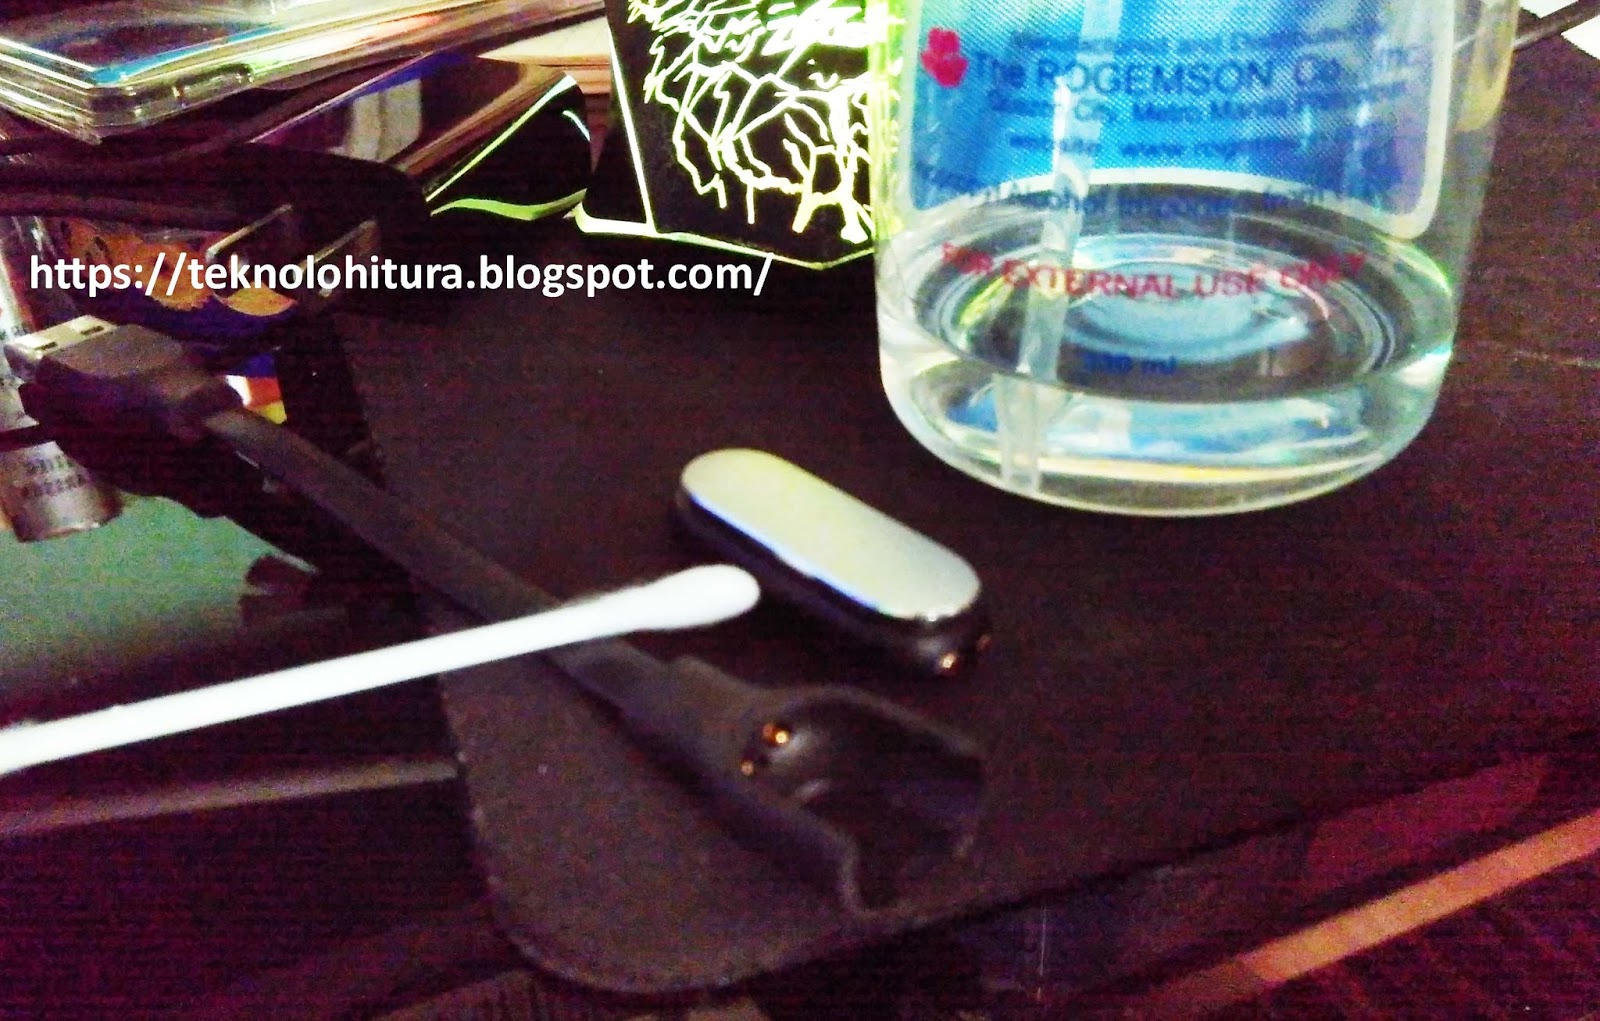 Issue: Xiaomi Mi Band Not Charging | Fix: Heating the Device